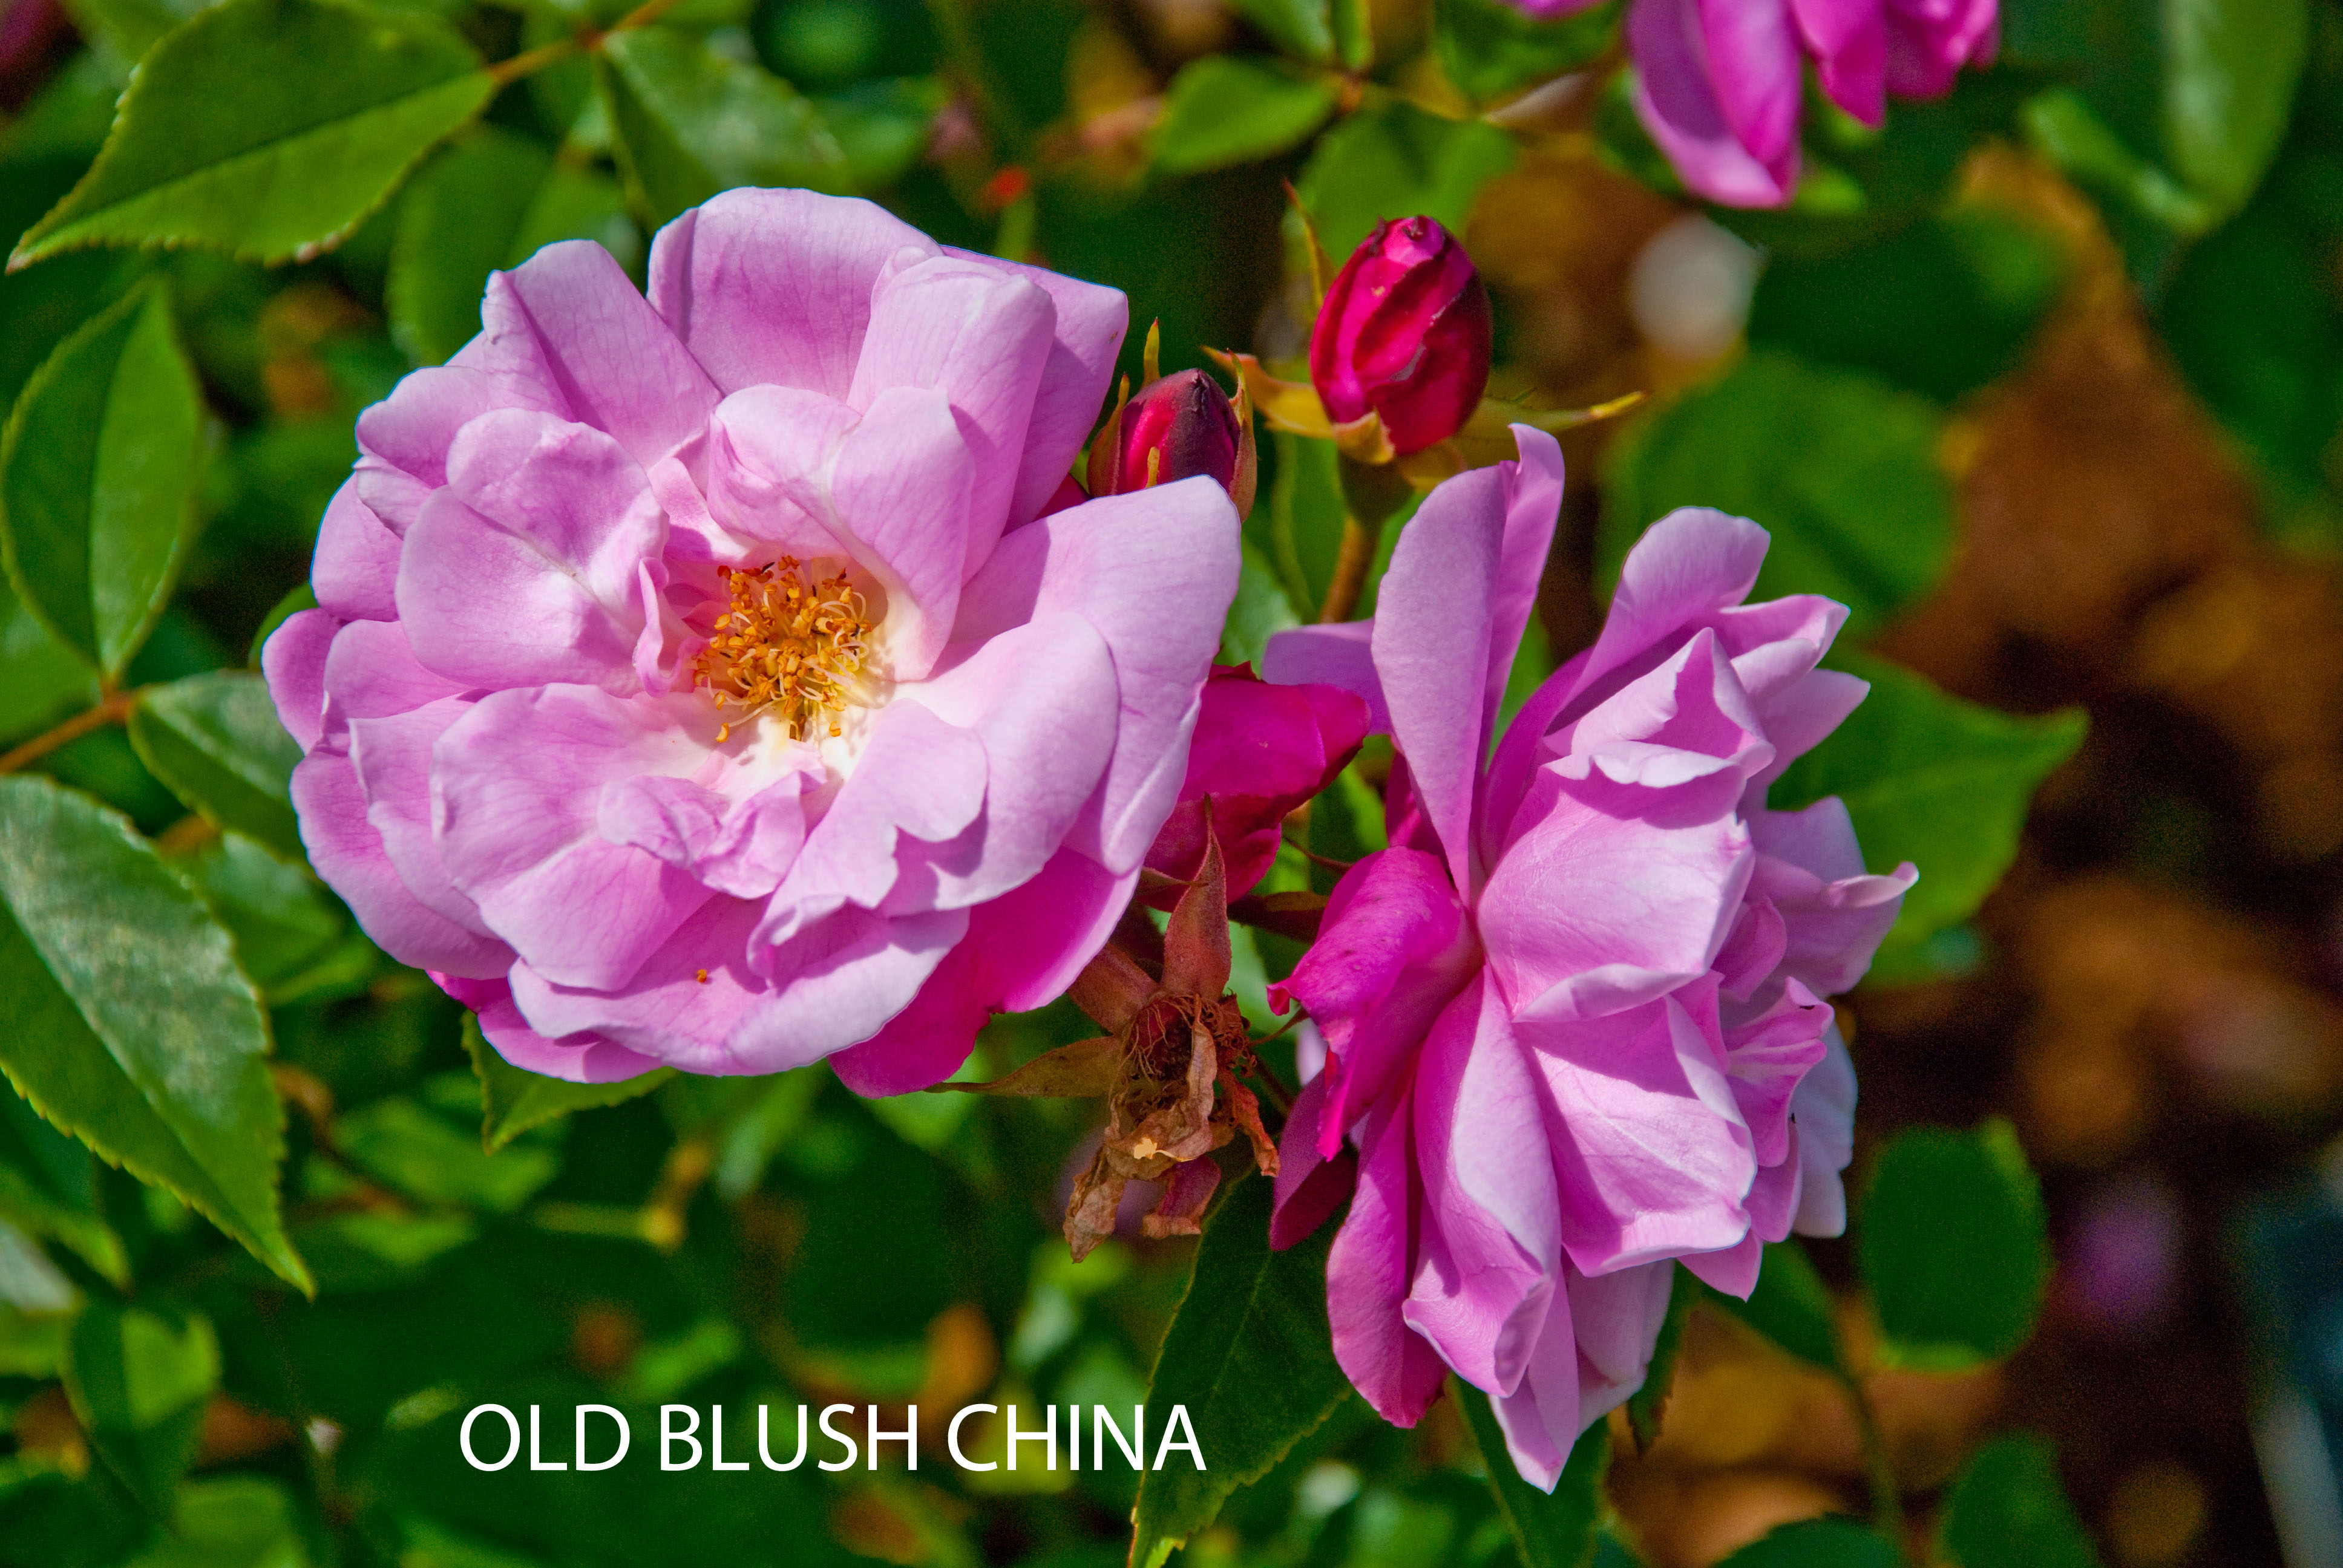 Old Blush China